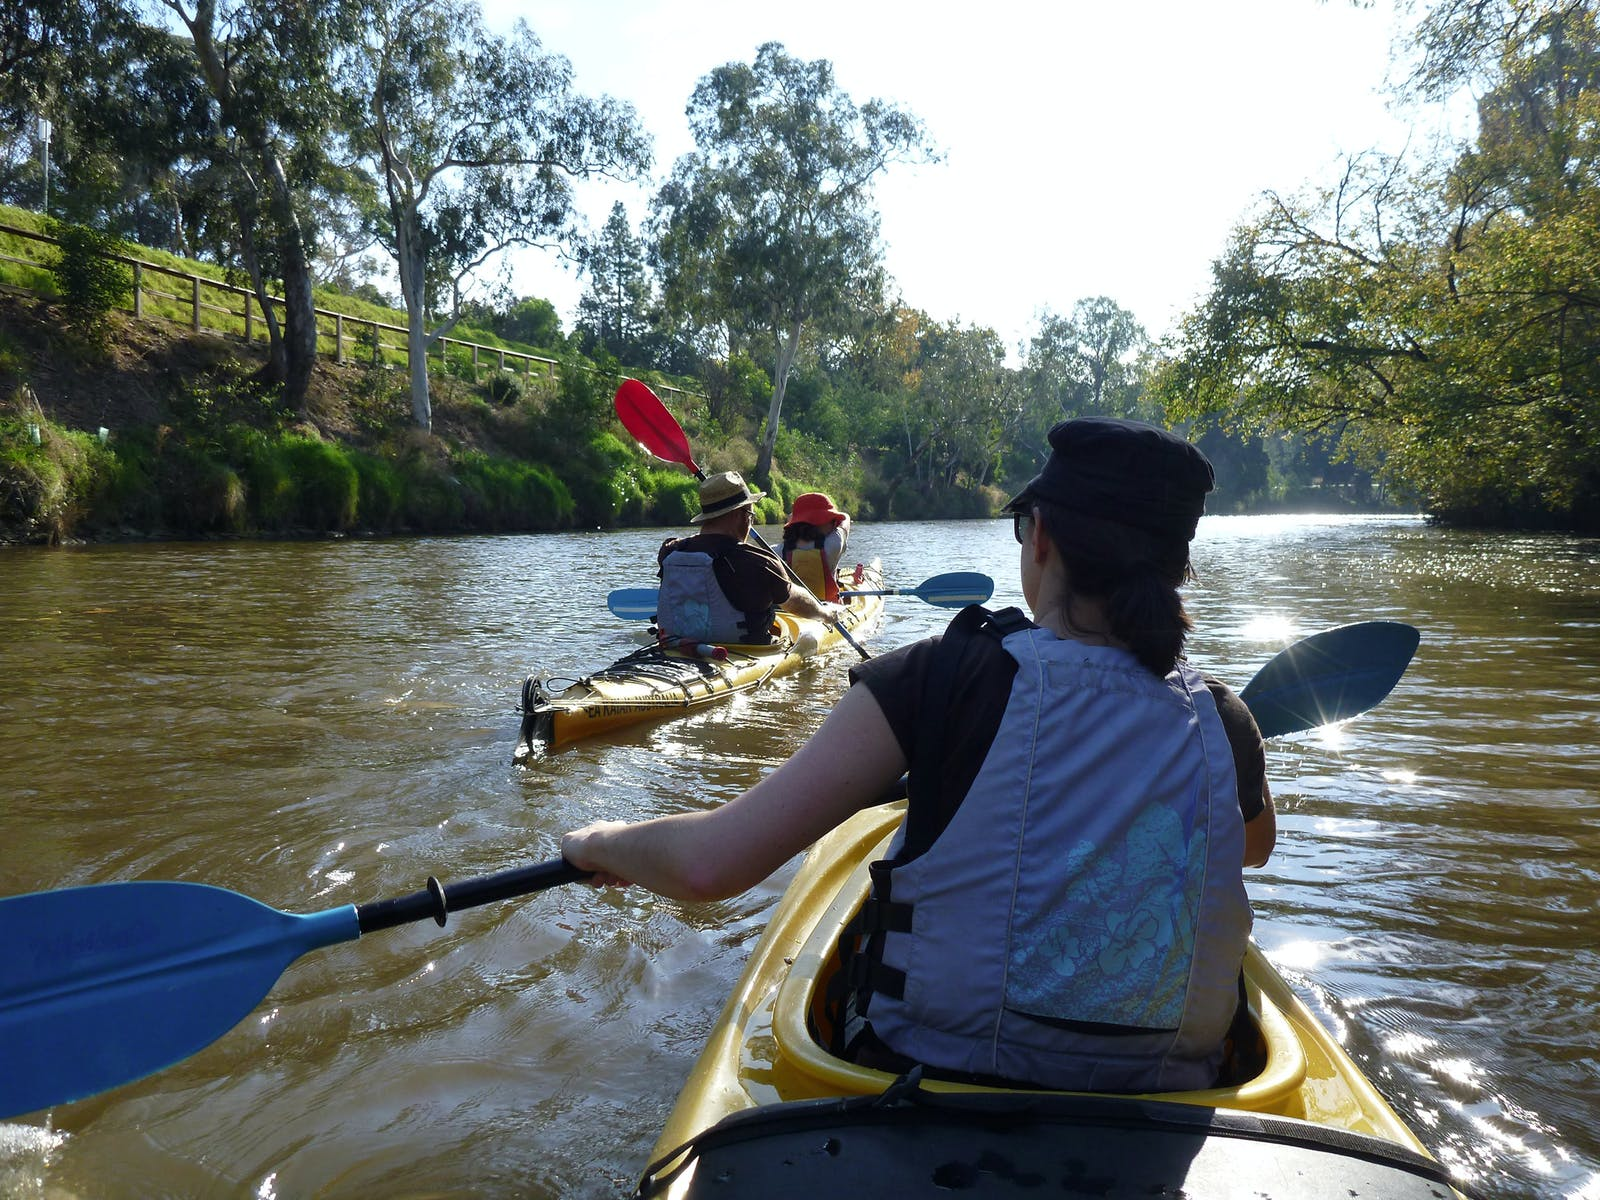 Kayak Hire on the Yarra River in Abbotsford, Melbourne